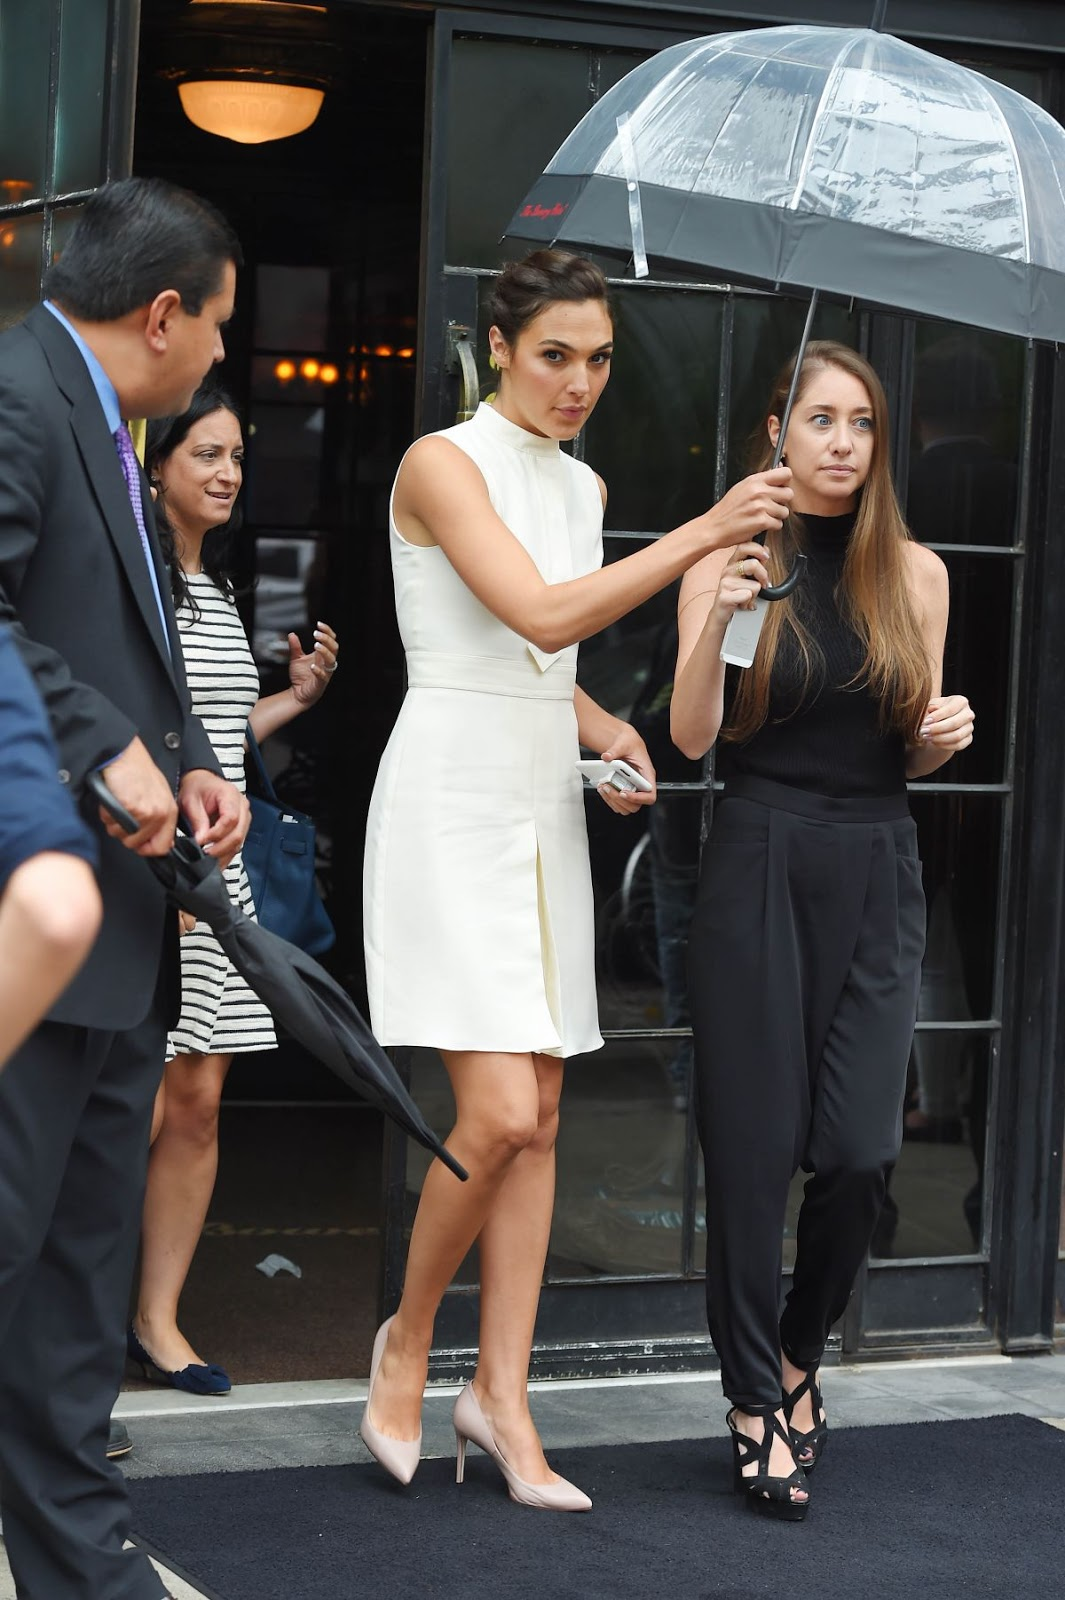 HQ Photos of Gal Gadot in White Dress as she Leaves Her Hotel In New York City